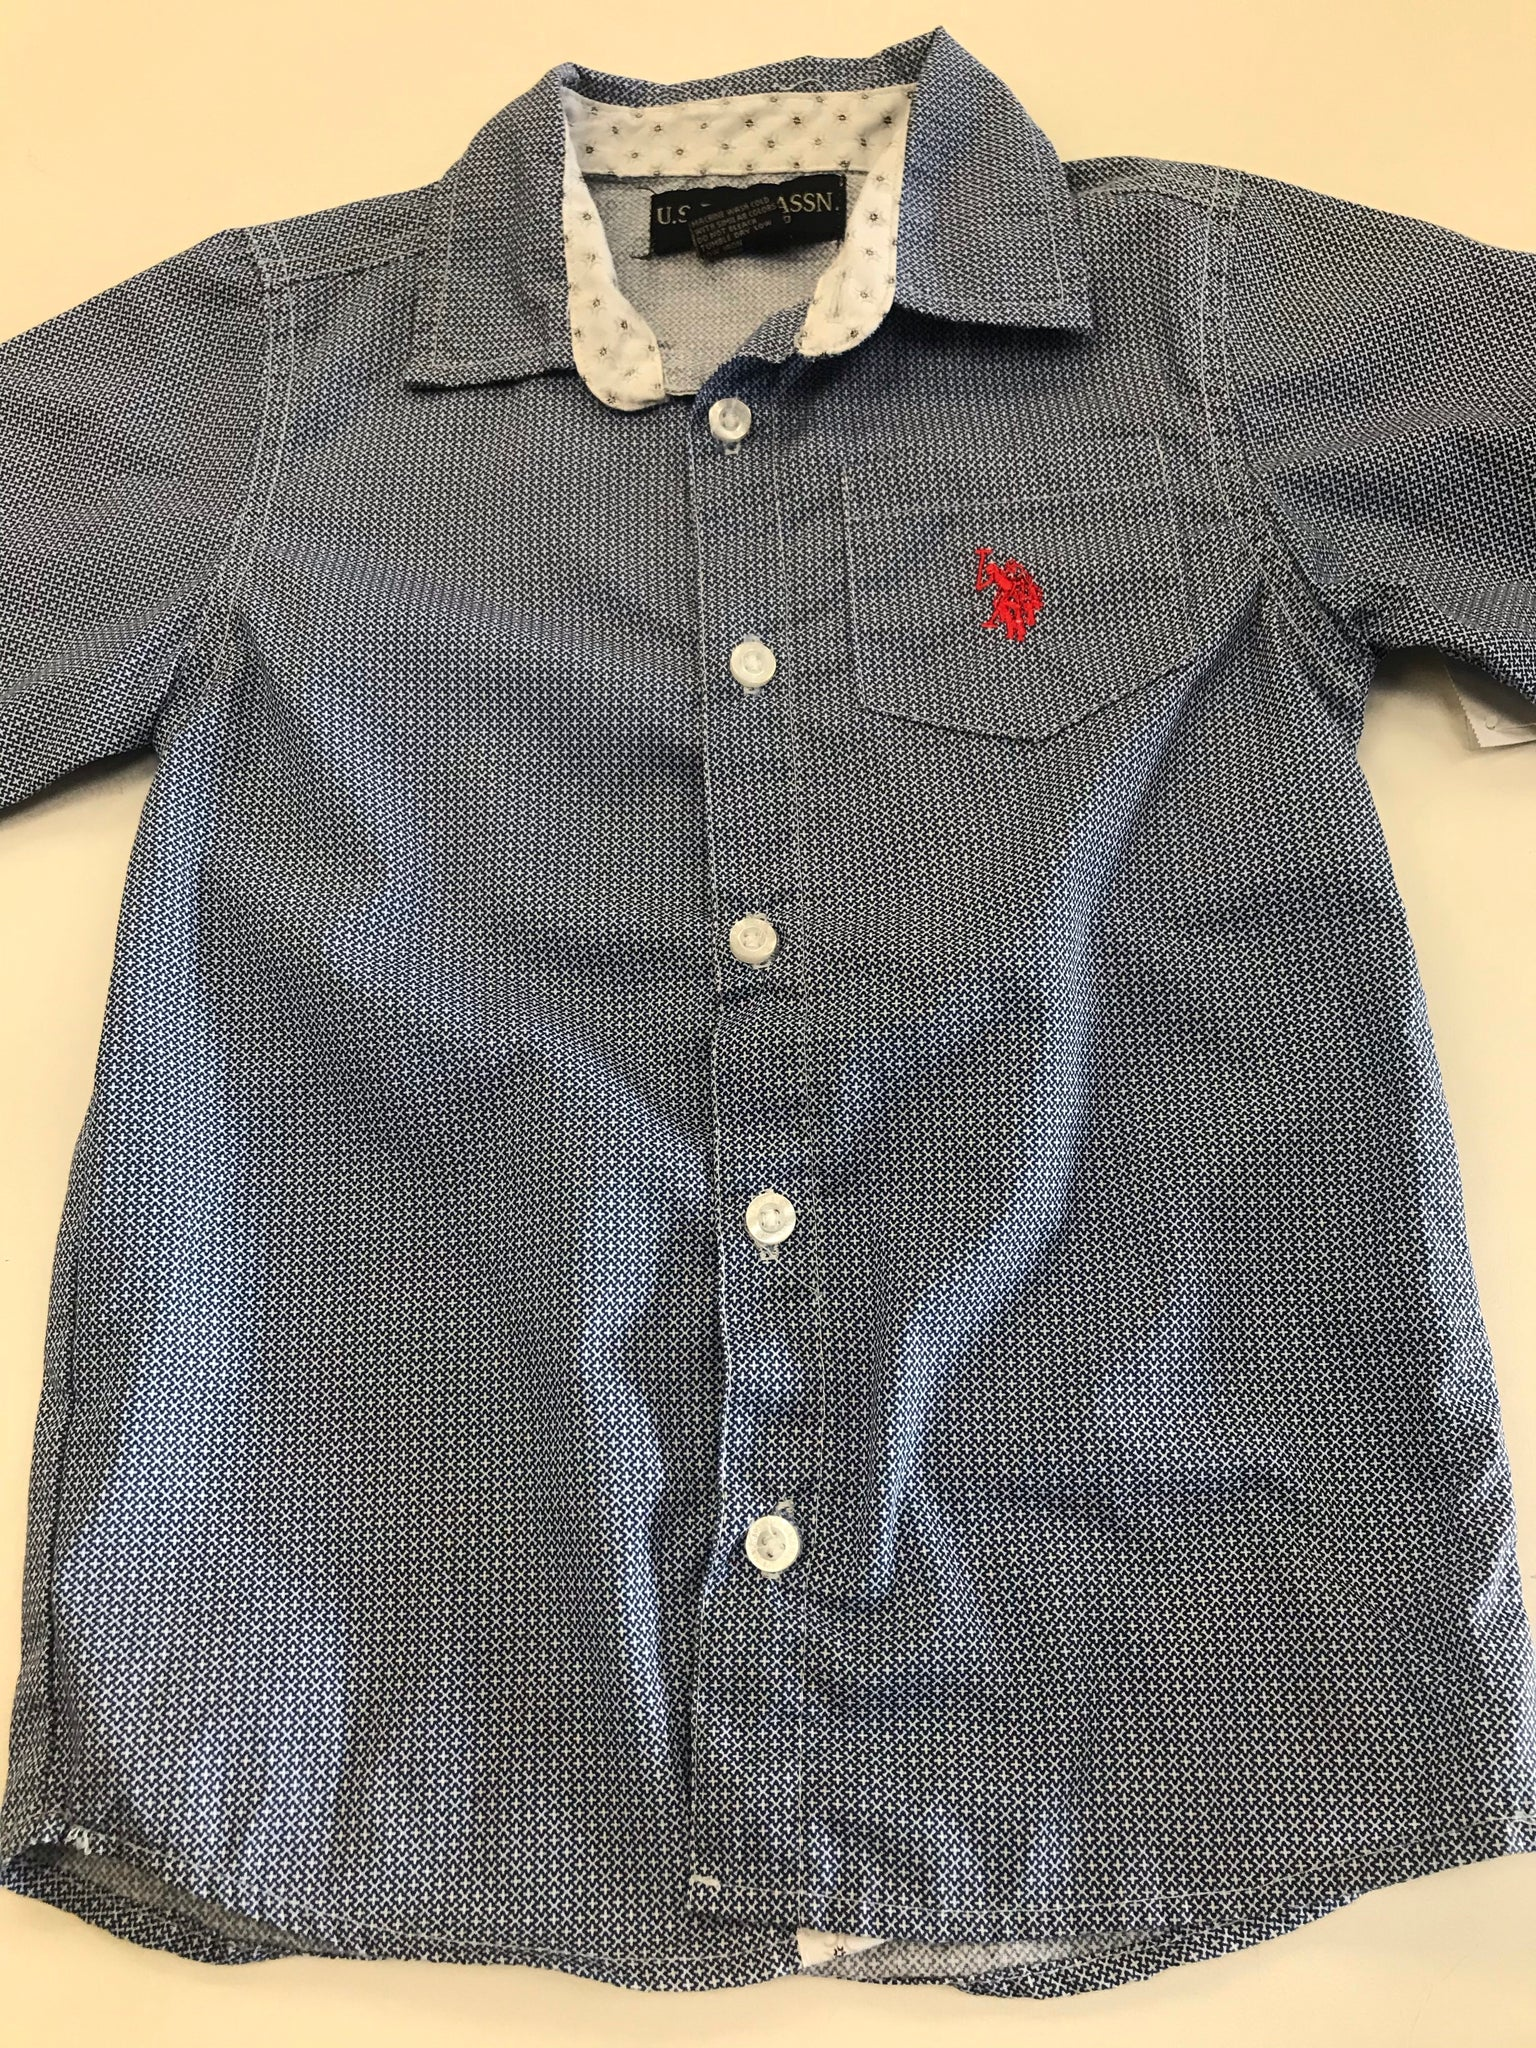 Boys Button Up Shirt US Polo 5